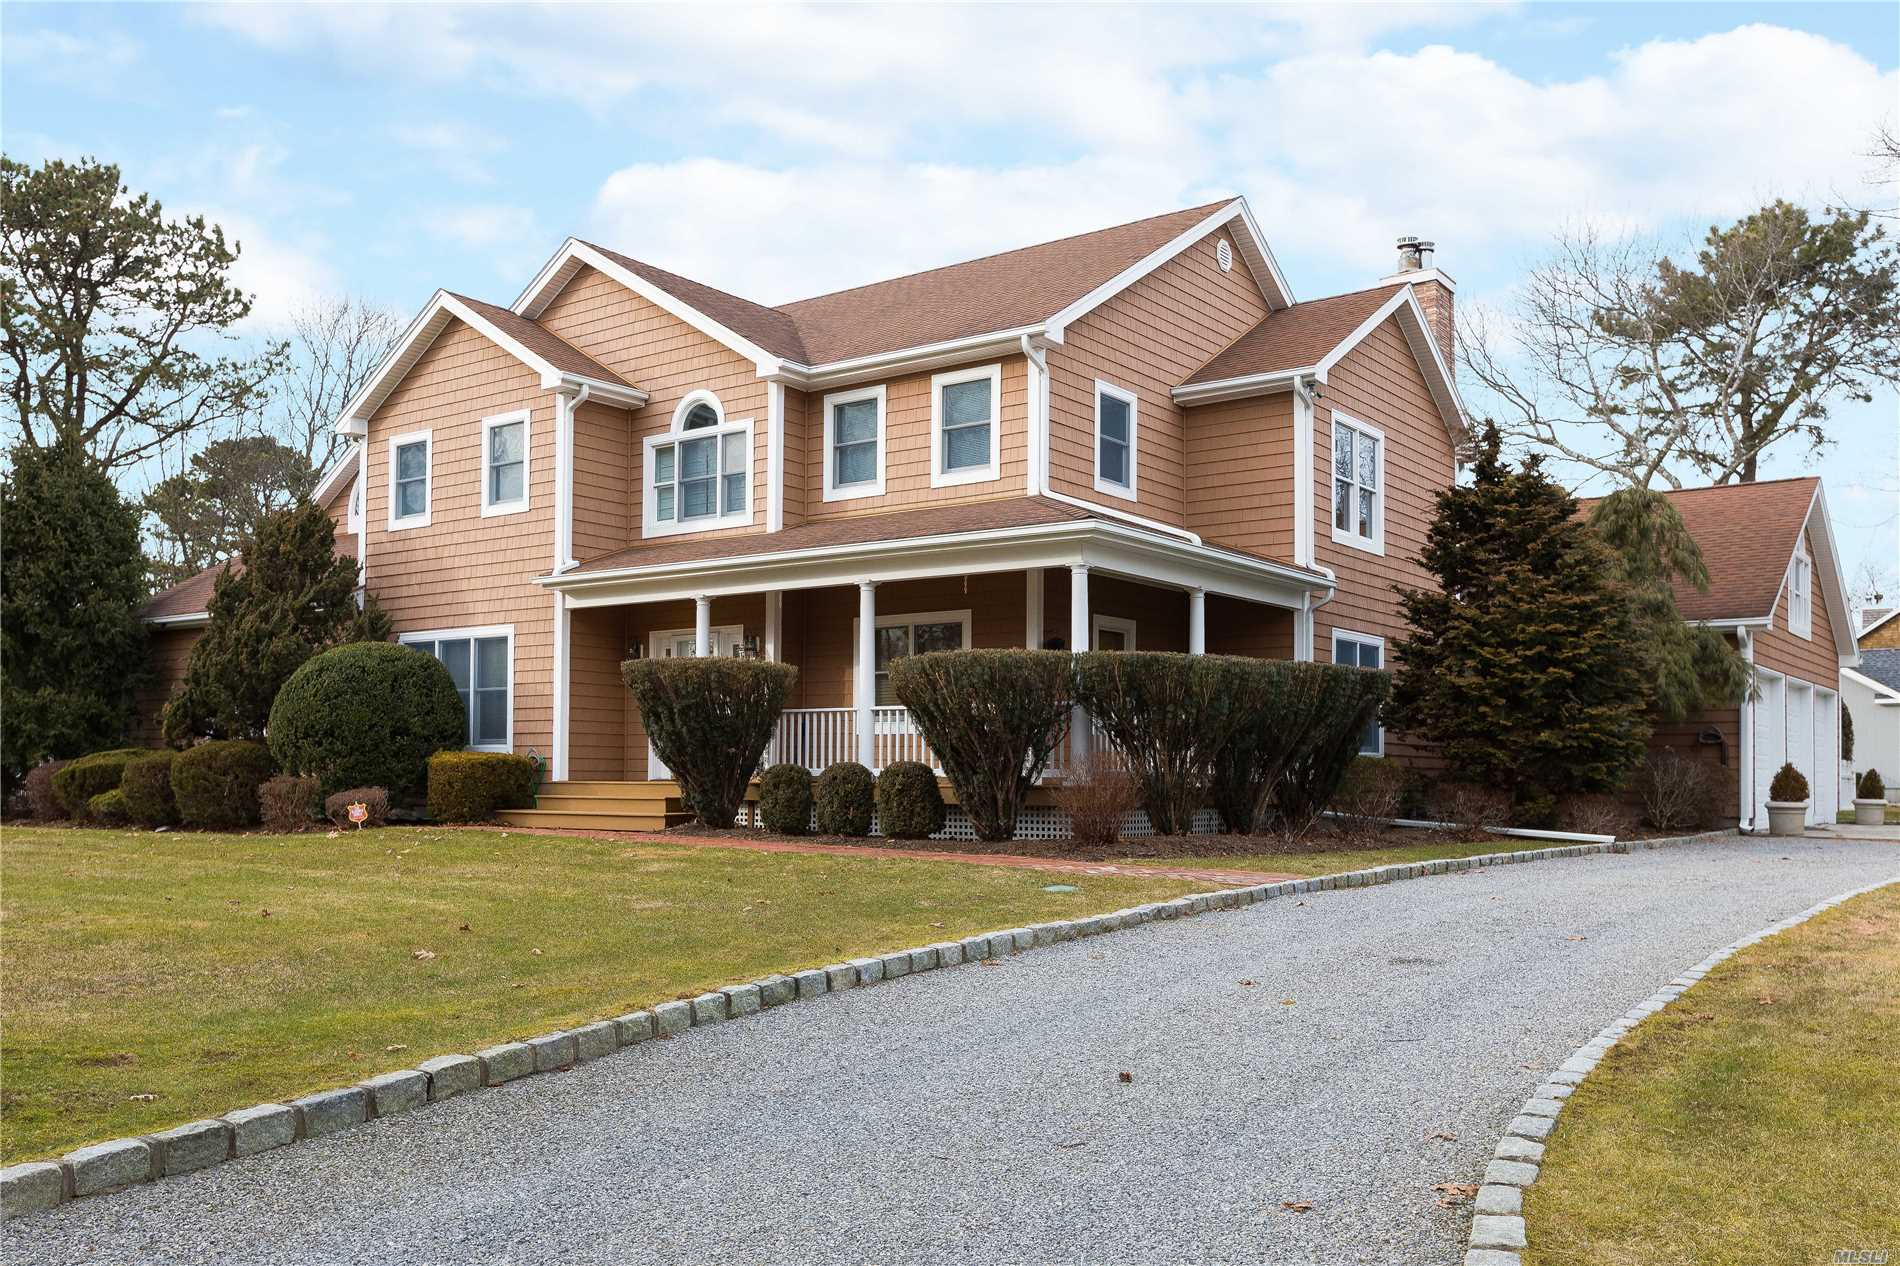 Photo of home for sale at 1 Jeffrey Ln, Westhampton Bch NY